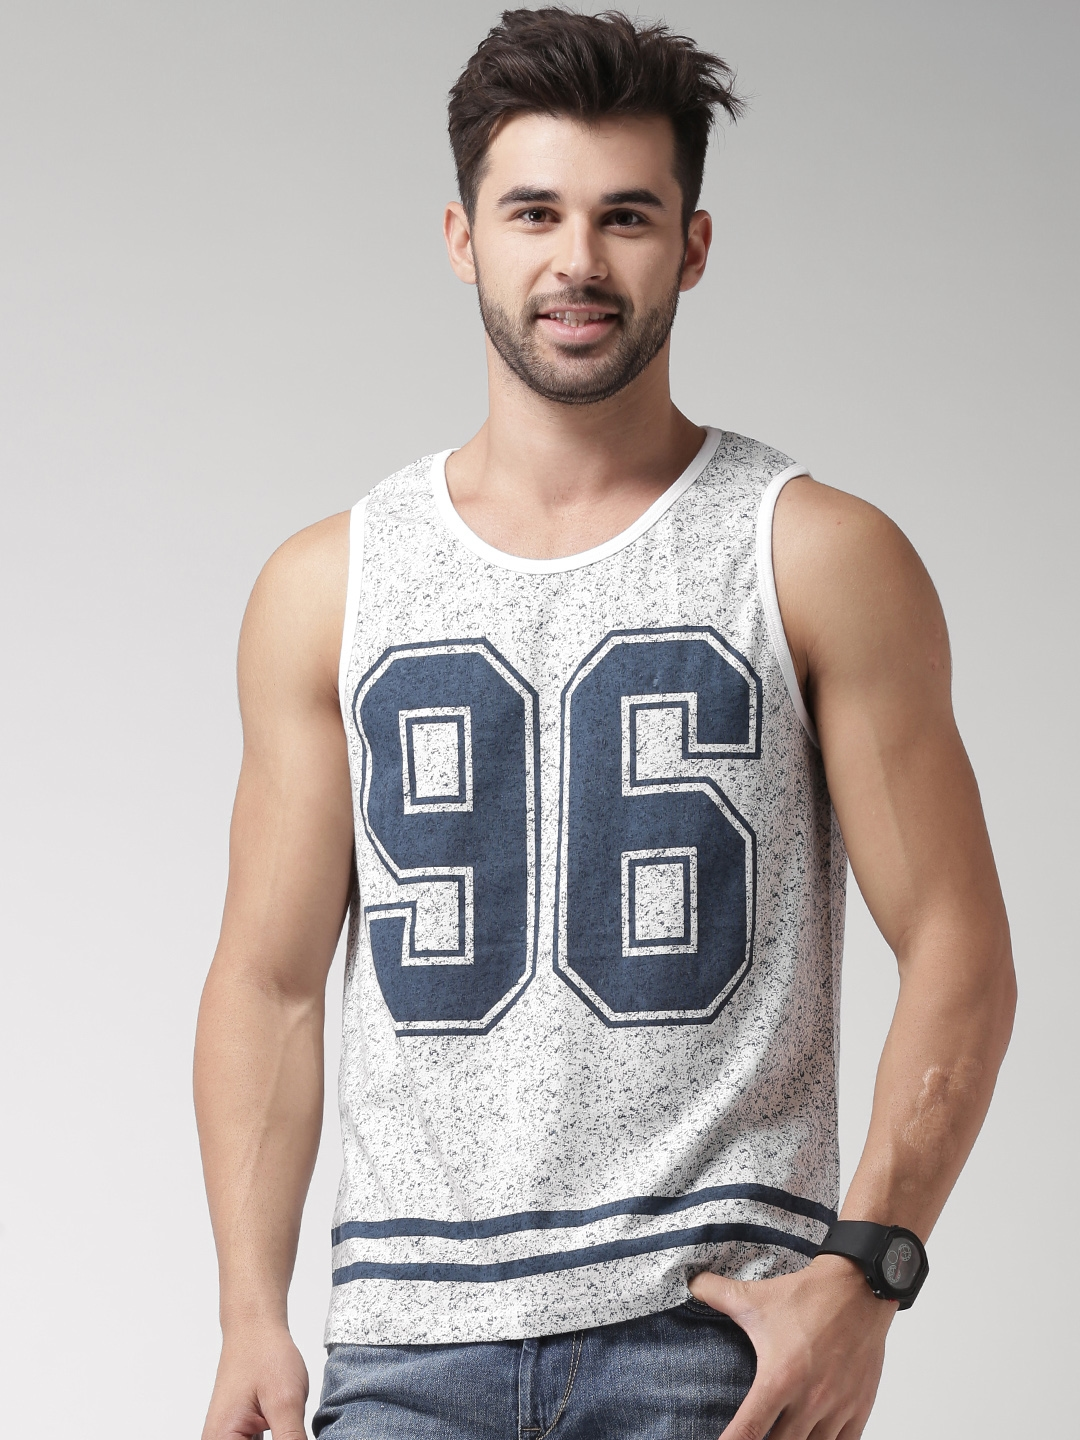 Moda Rapido White   Navy Printed Sleeveless T shirt